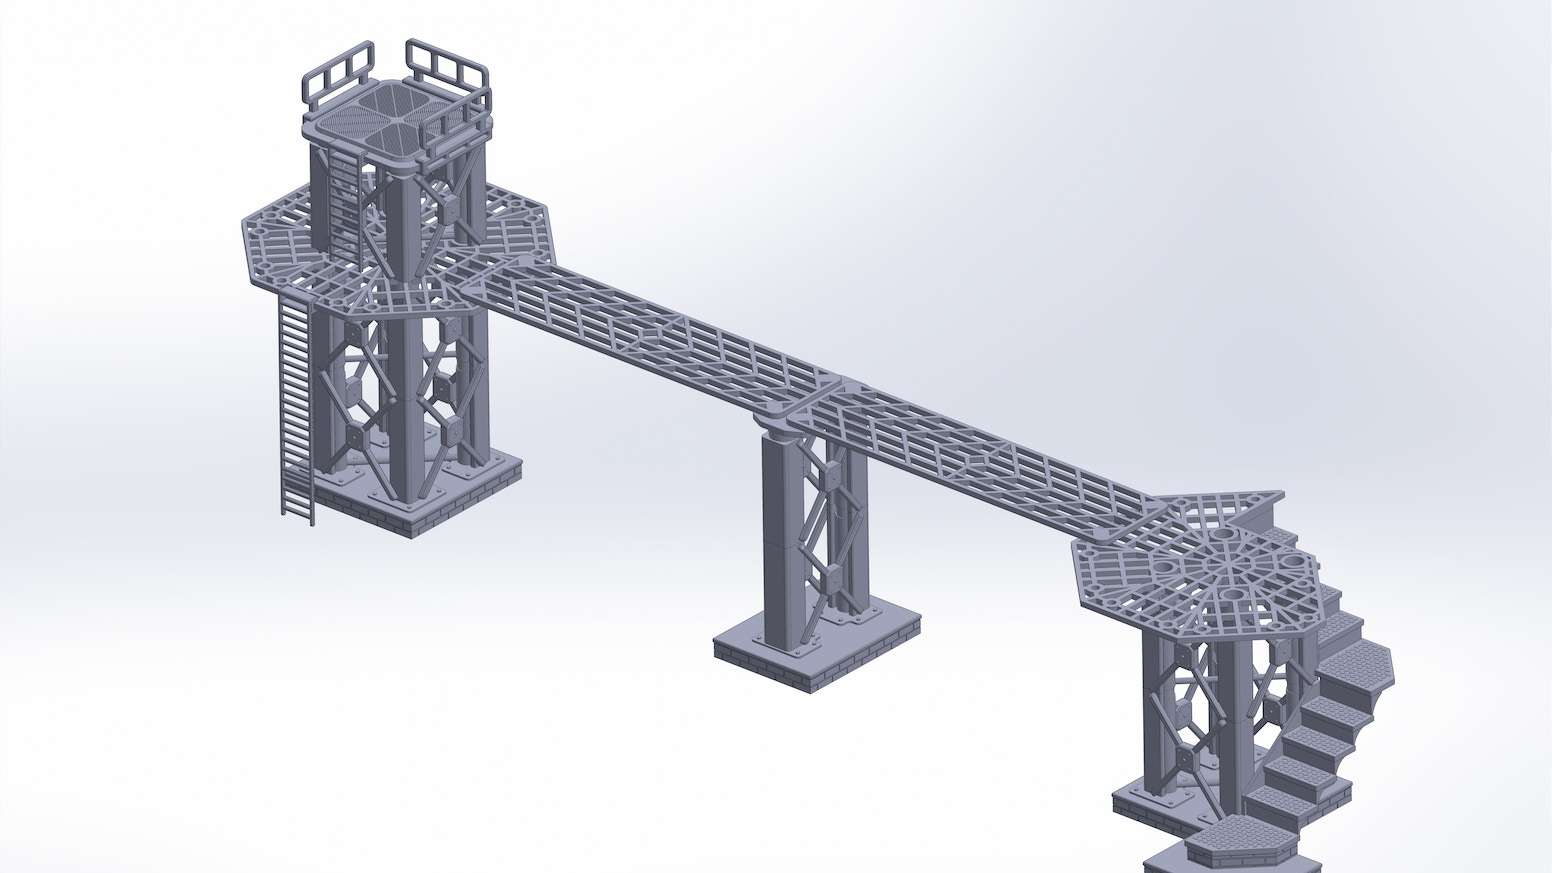 STL Files of Modular Tower & Walkway